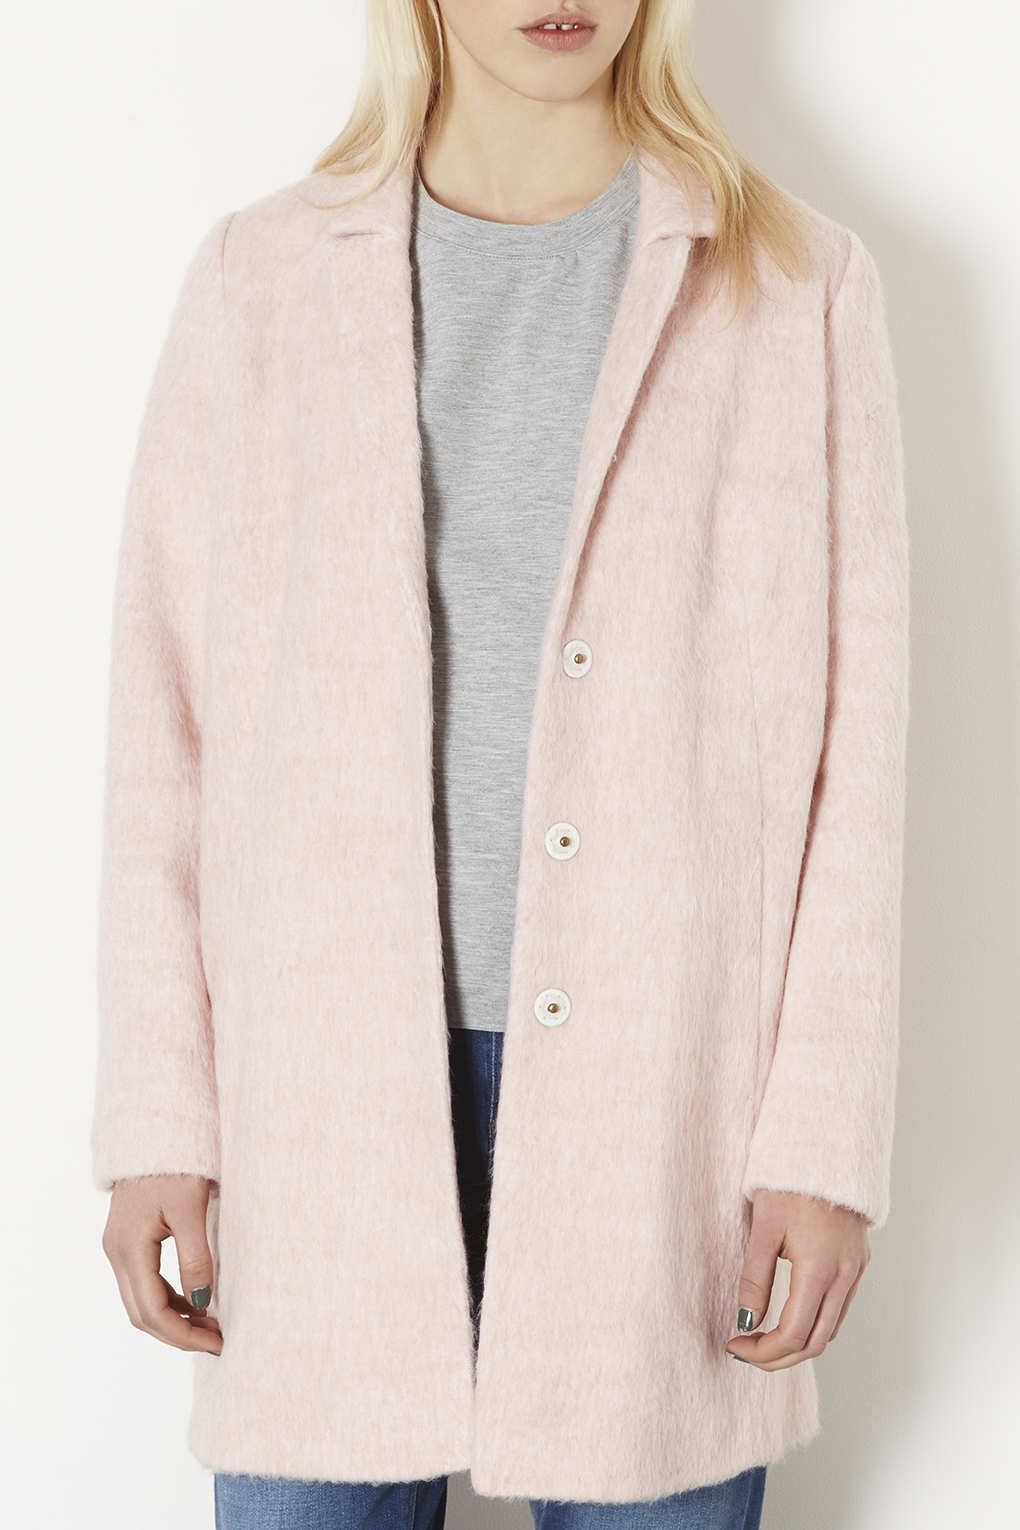 Topshop Tall Fluffy Swing Coat in Pink | Lyst